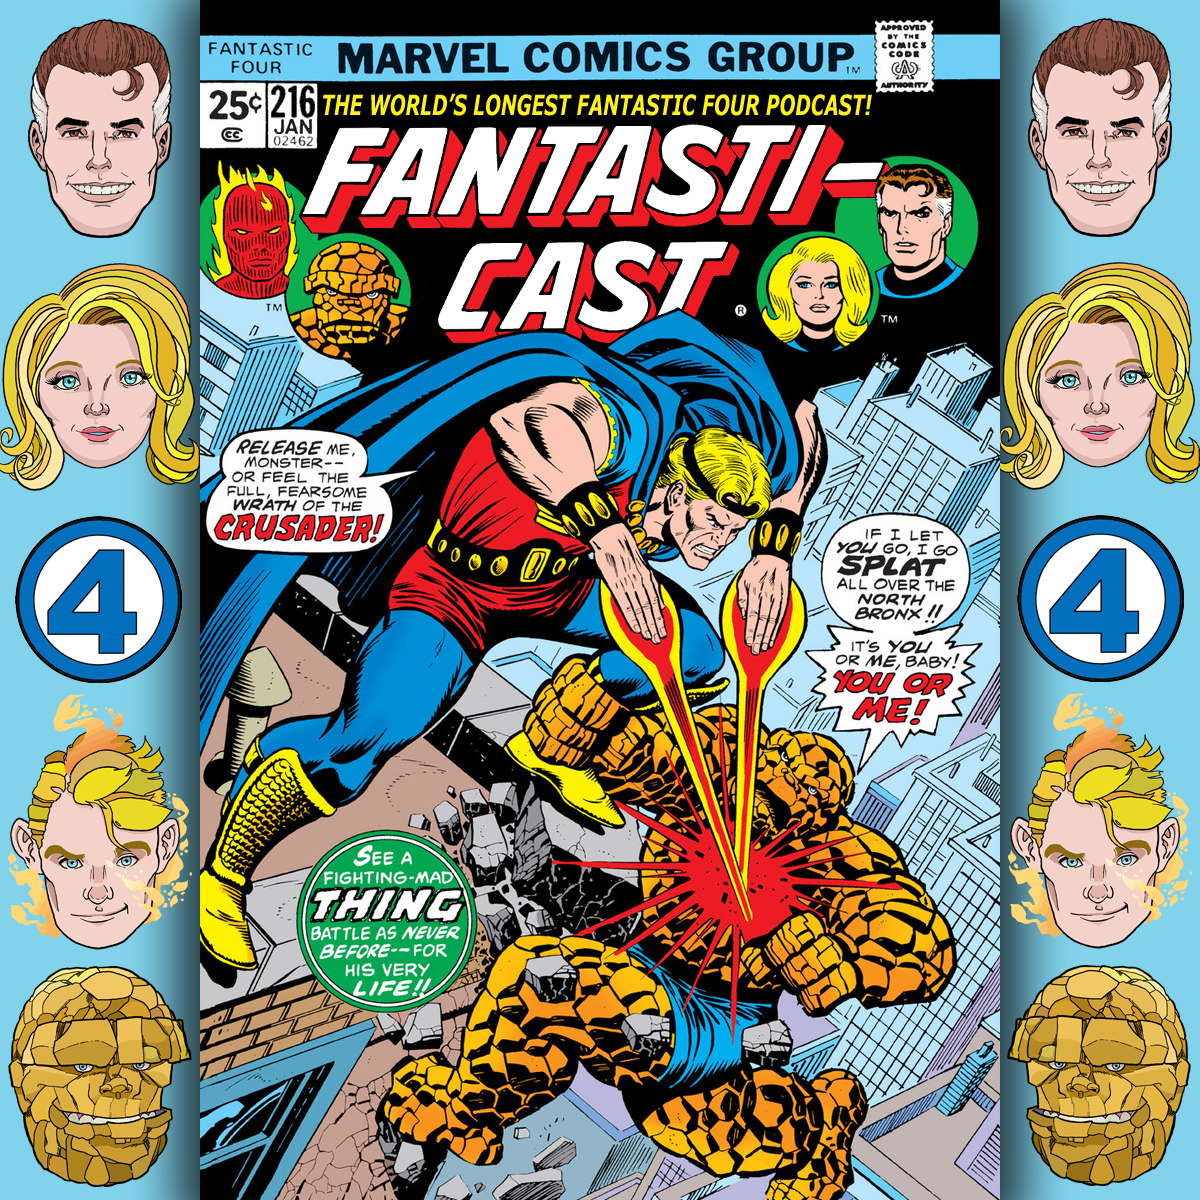 Episode 216: Fantastic Four #165 - The Light of Other Worlds